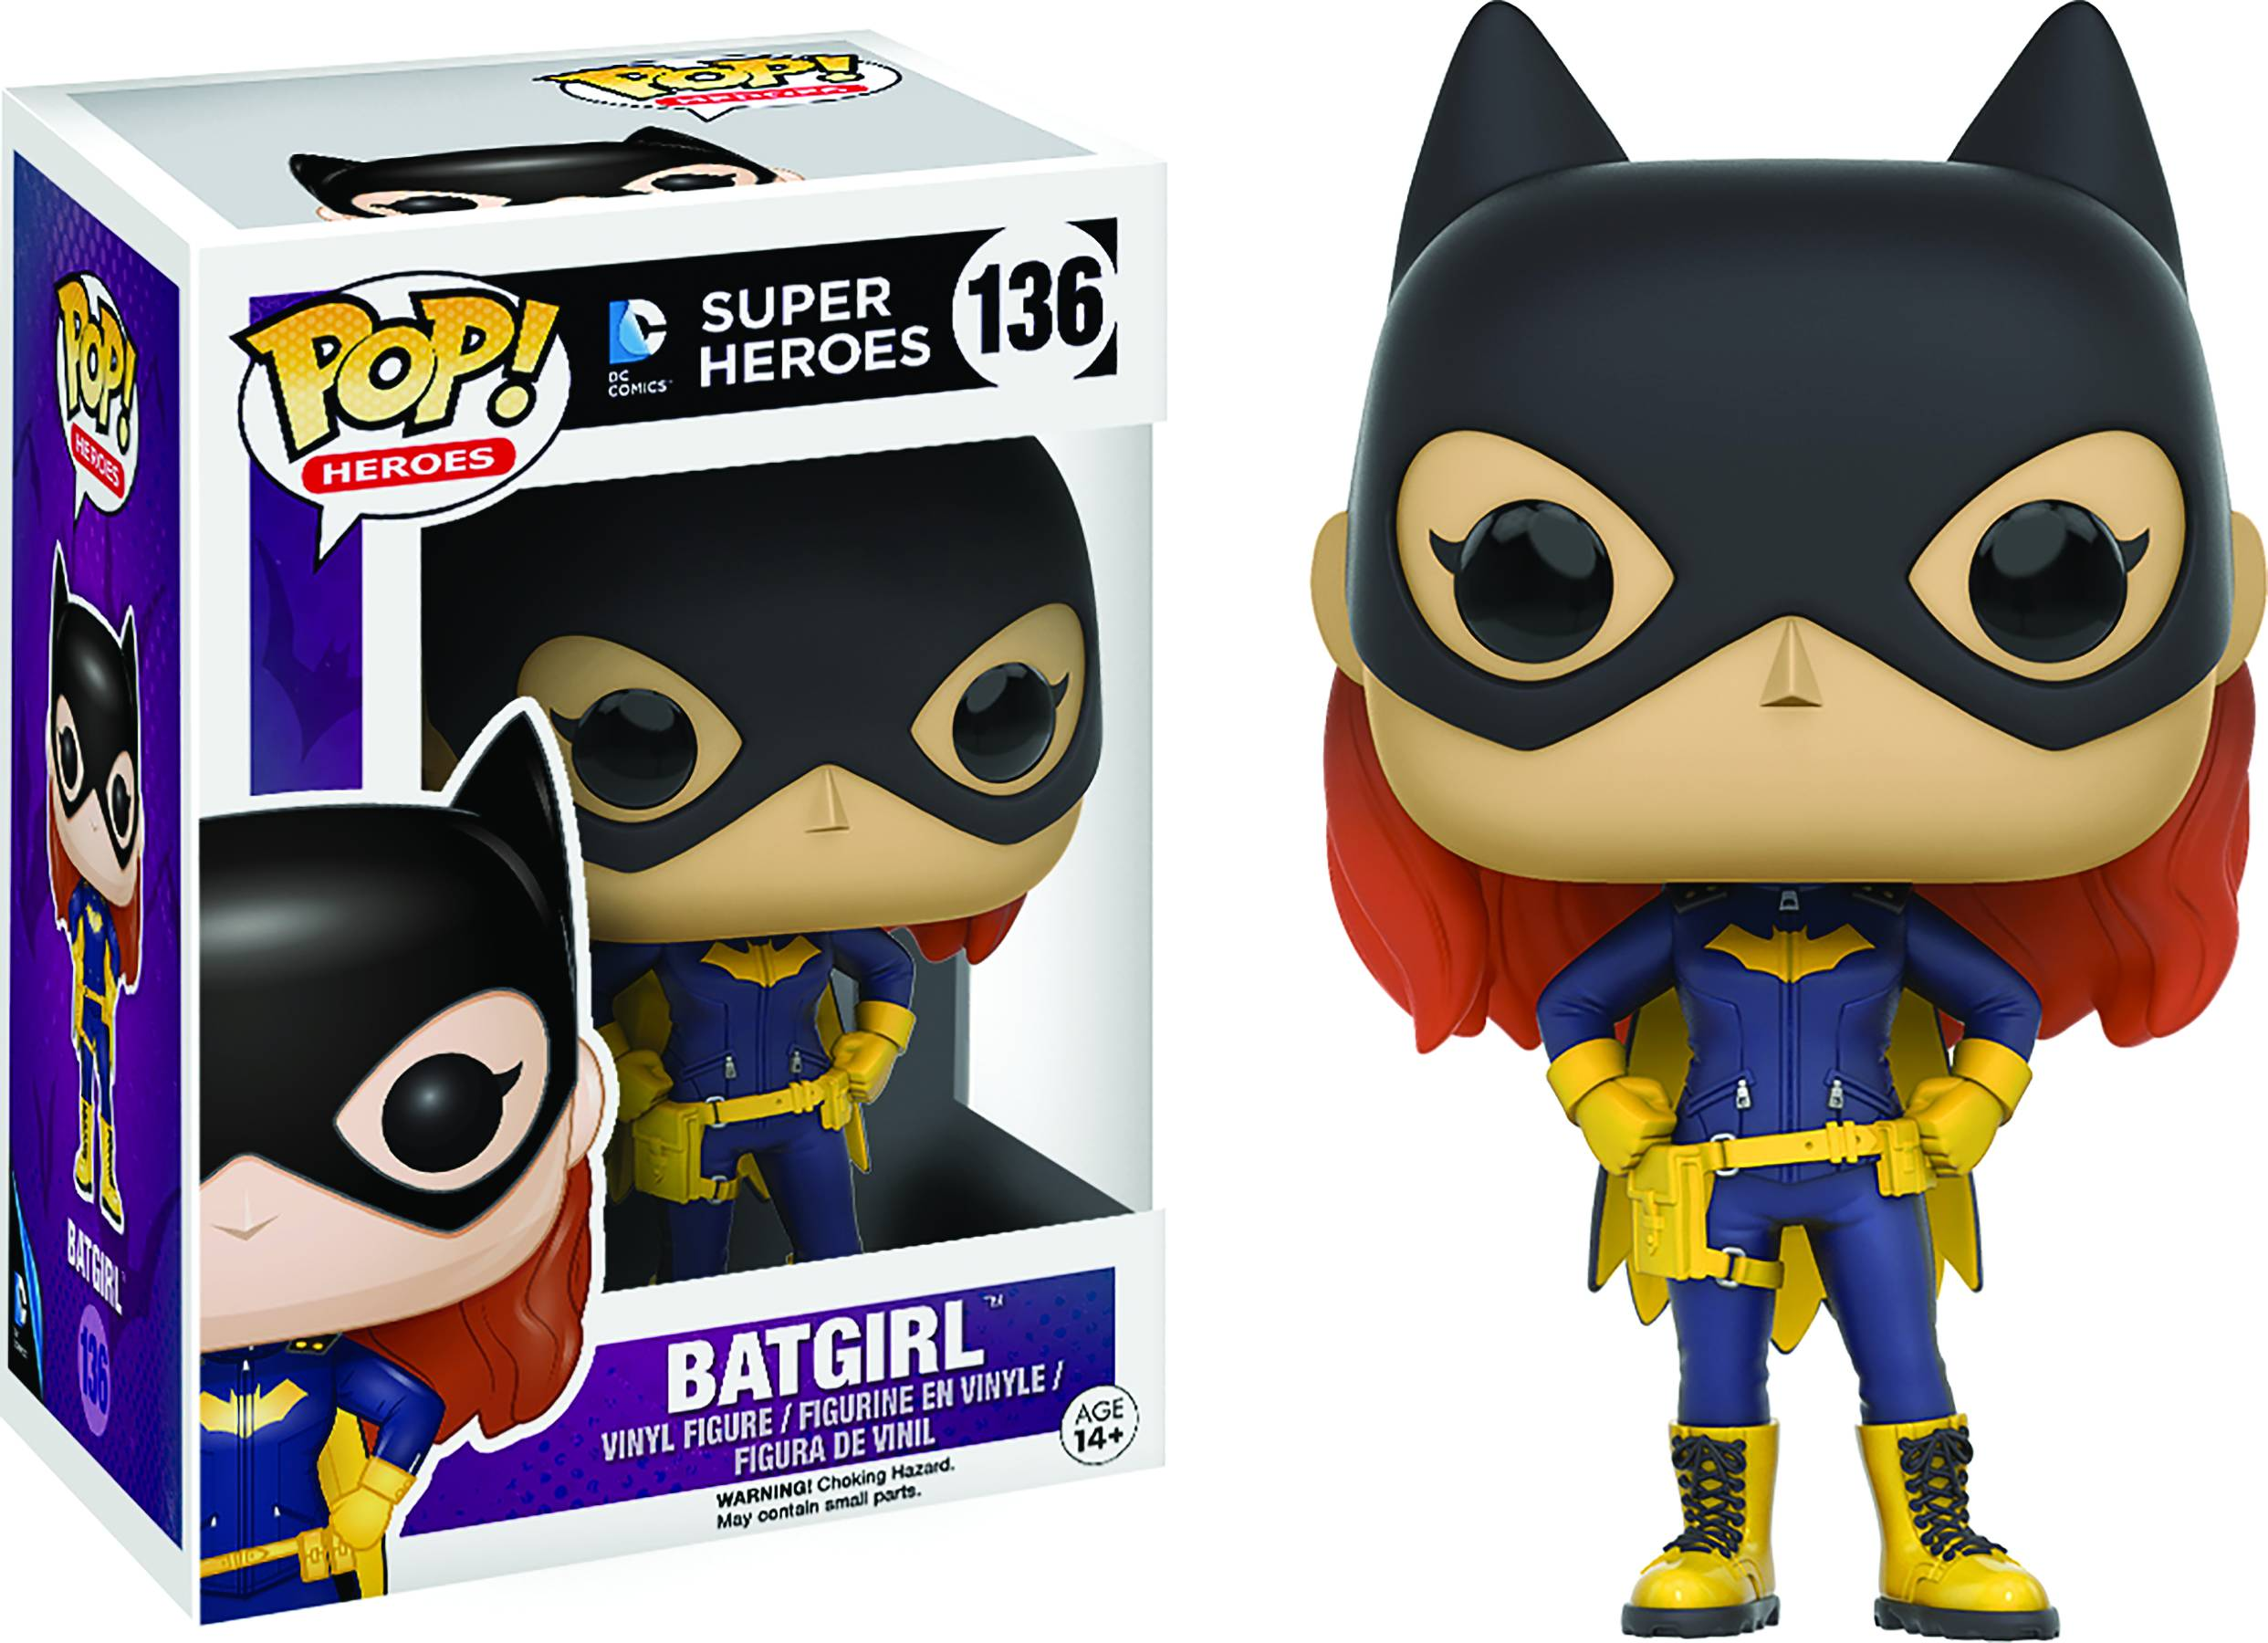 POP HEROES BATGIRL 2016 VINYL FIG